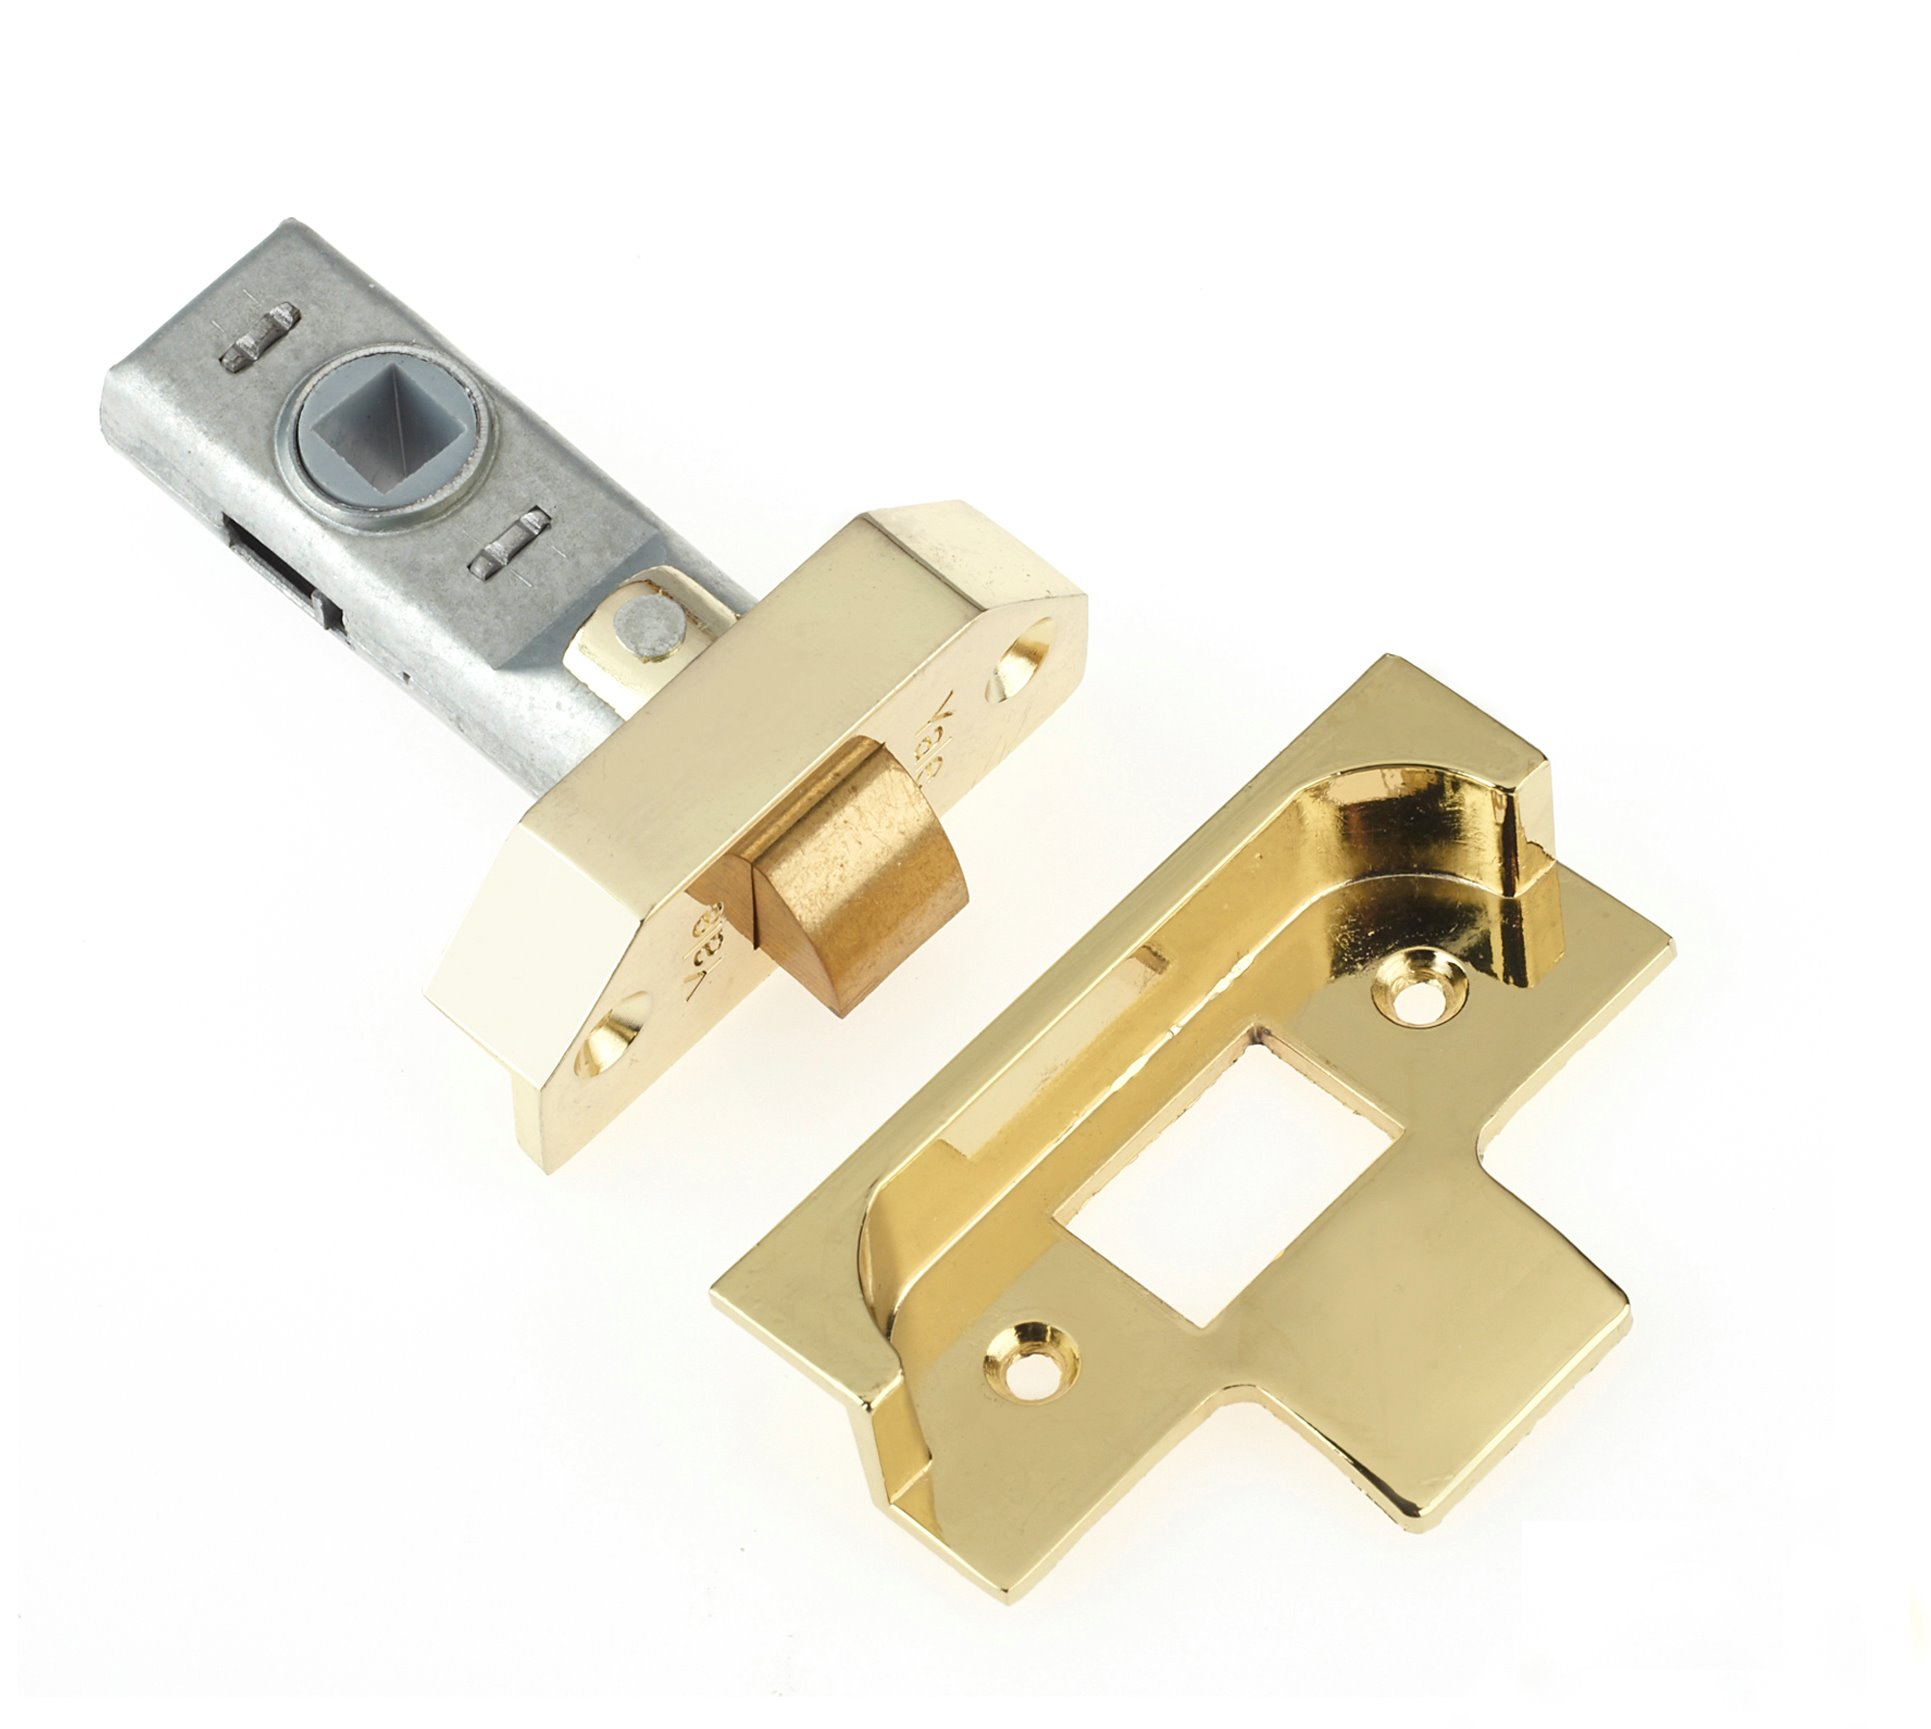 PM999 Rebated Mortice Latch